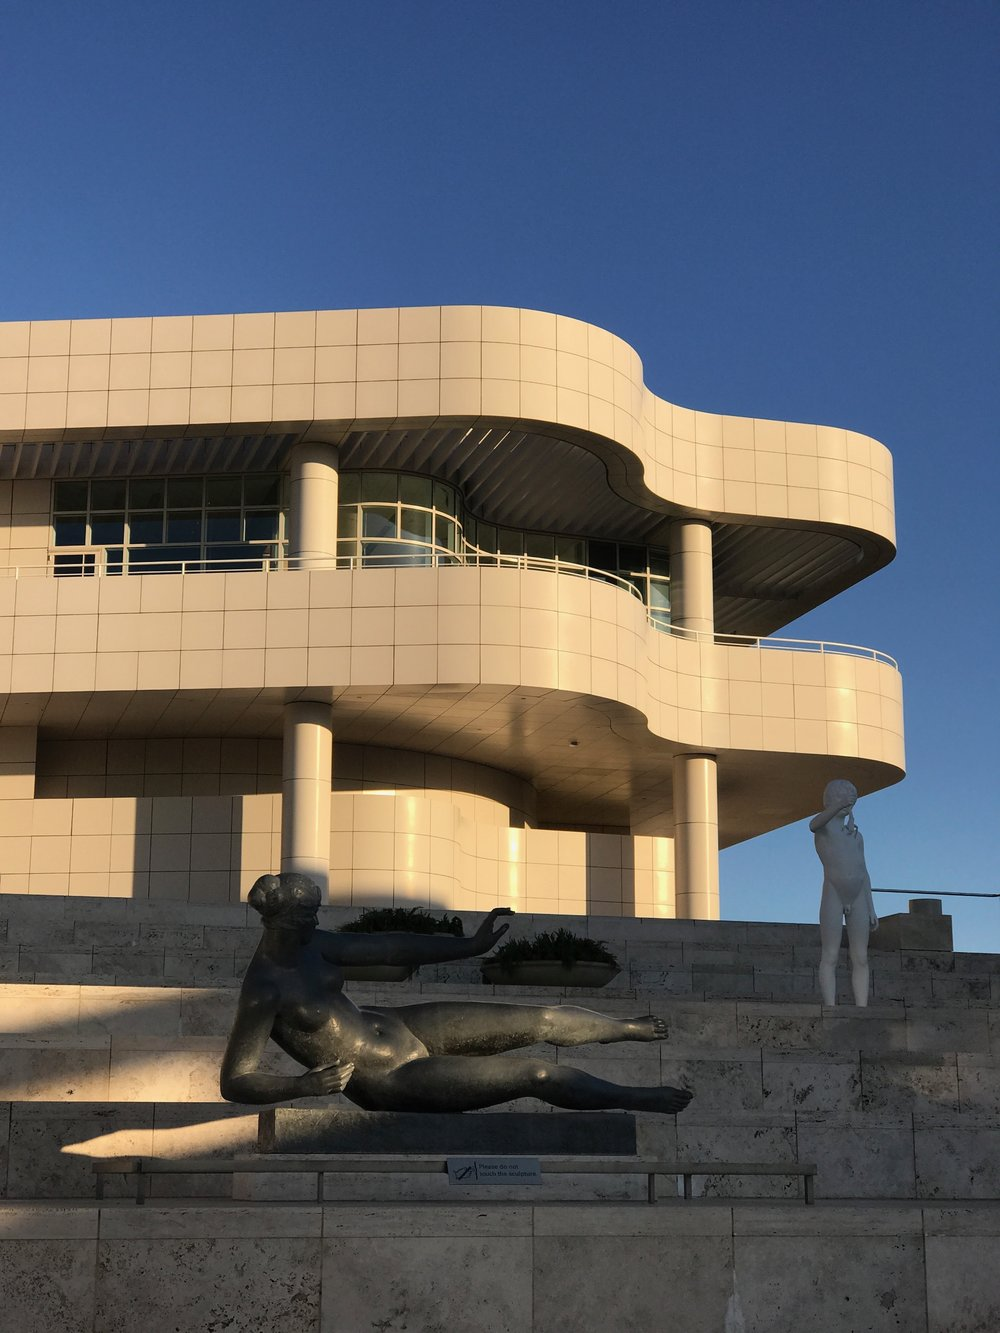 The Getty - It's where the architecture is in the same league as the monstrous collection of European and American art spanning medieval times to the present.